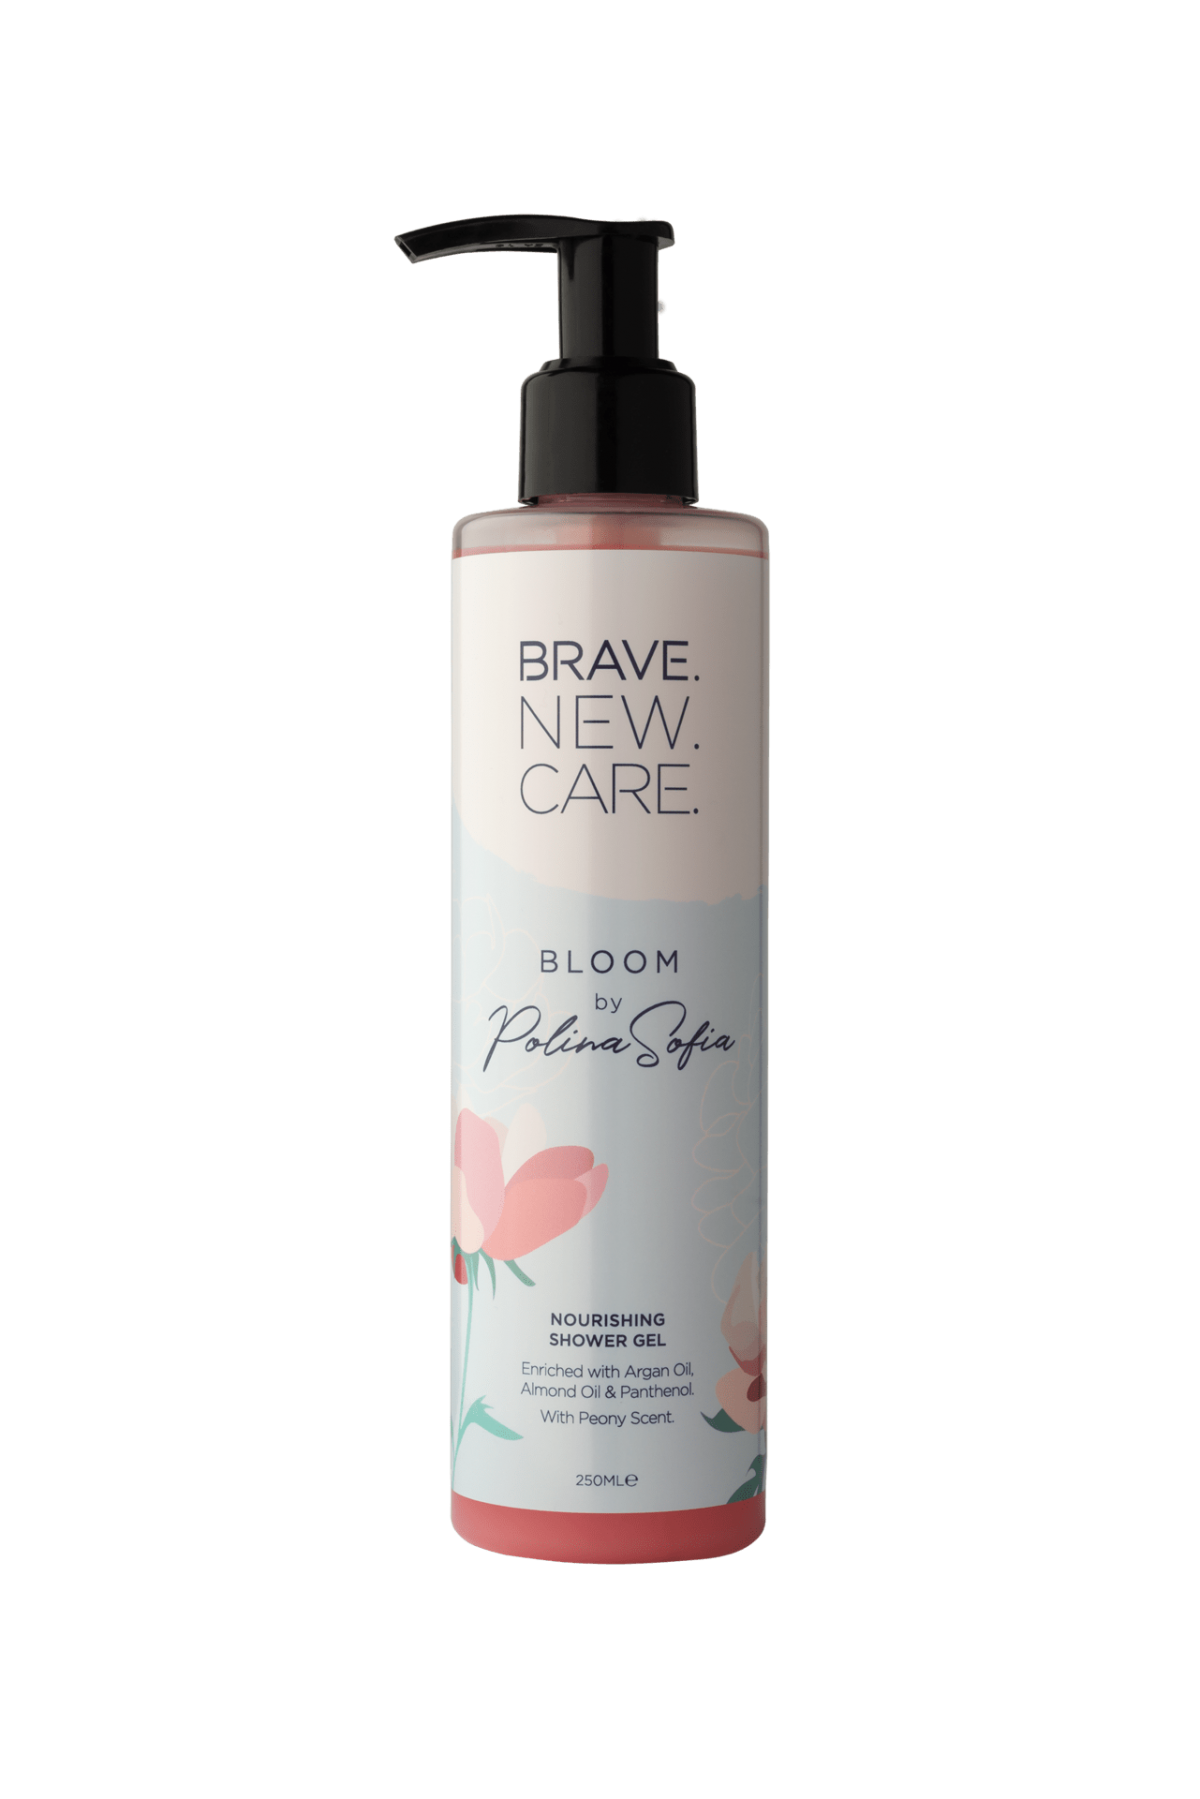 Nourishing and softening shower gel Bloom by Polina Sofia